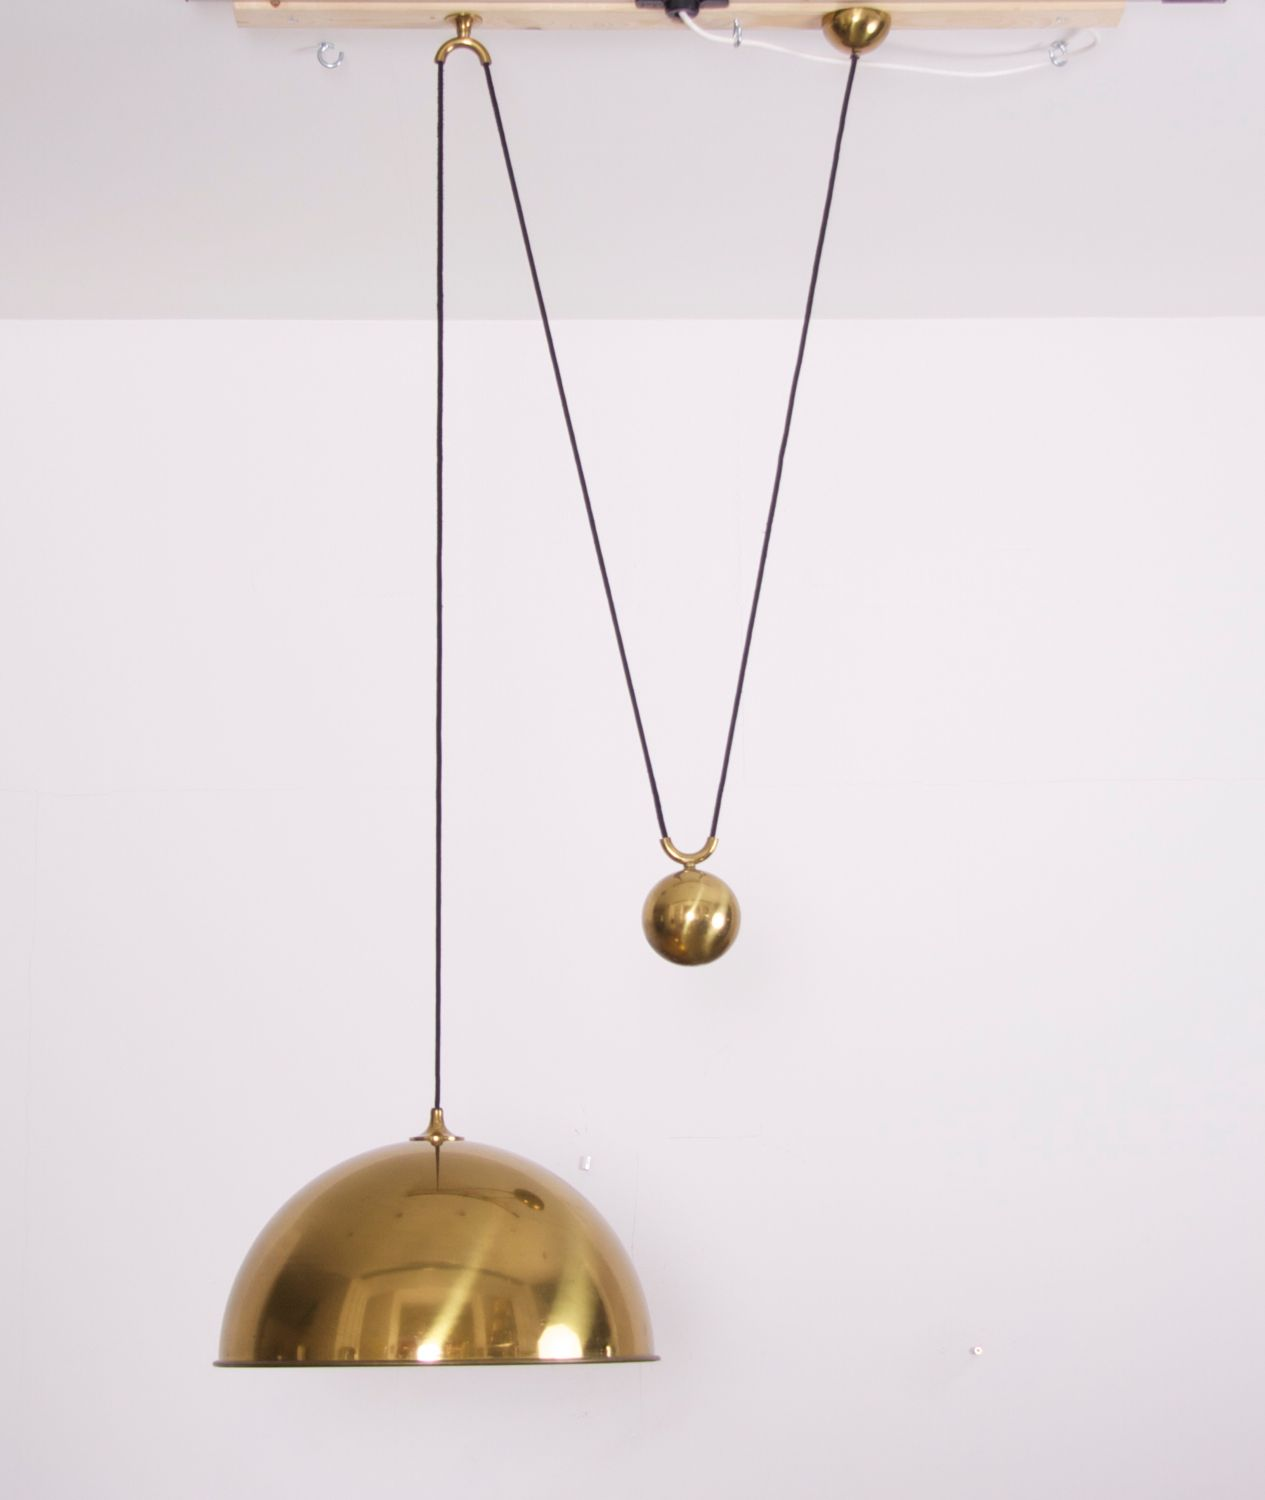 Rare extra large florian schulz posa side counterweight pendant rare extra large florian schulz posa side counterweight pendant lamp from a mozeypictures Image collections